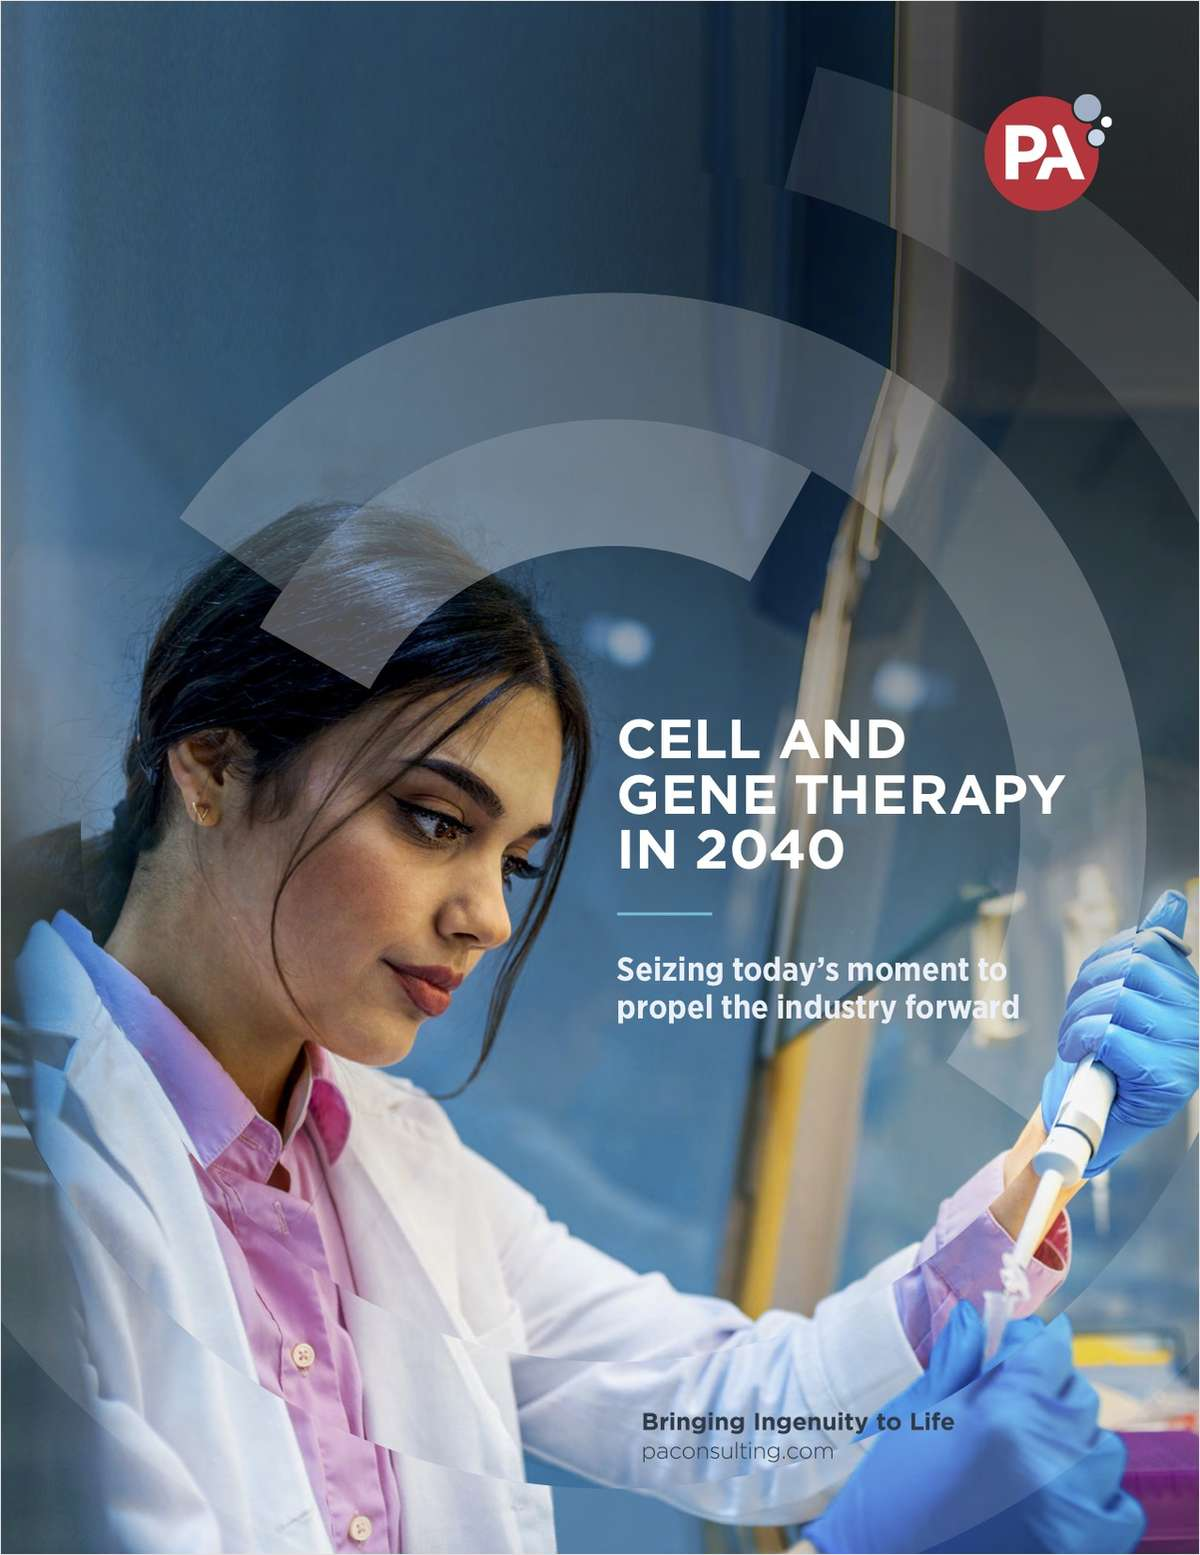 Cell & Gene Therapy in 2040: Seizing the moment to propel the industry forward